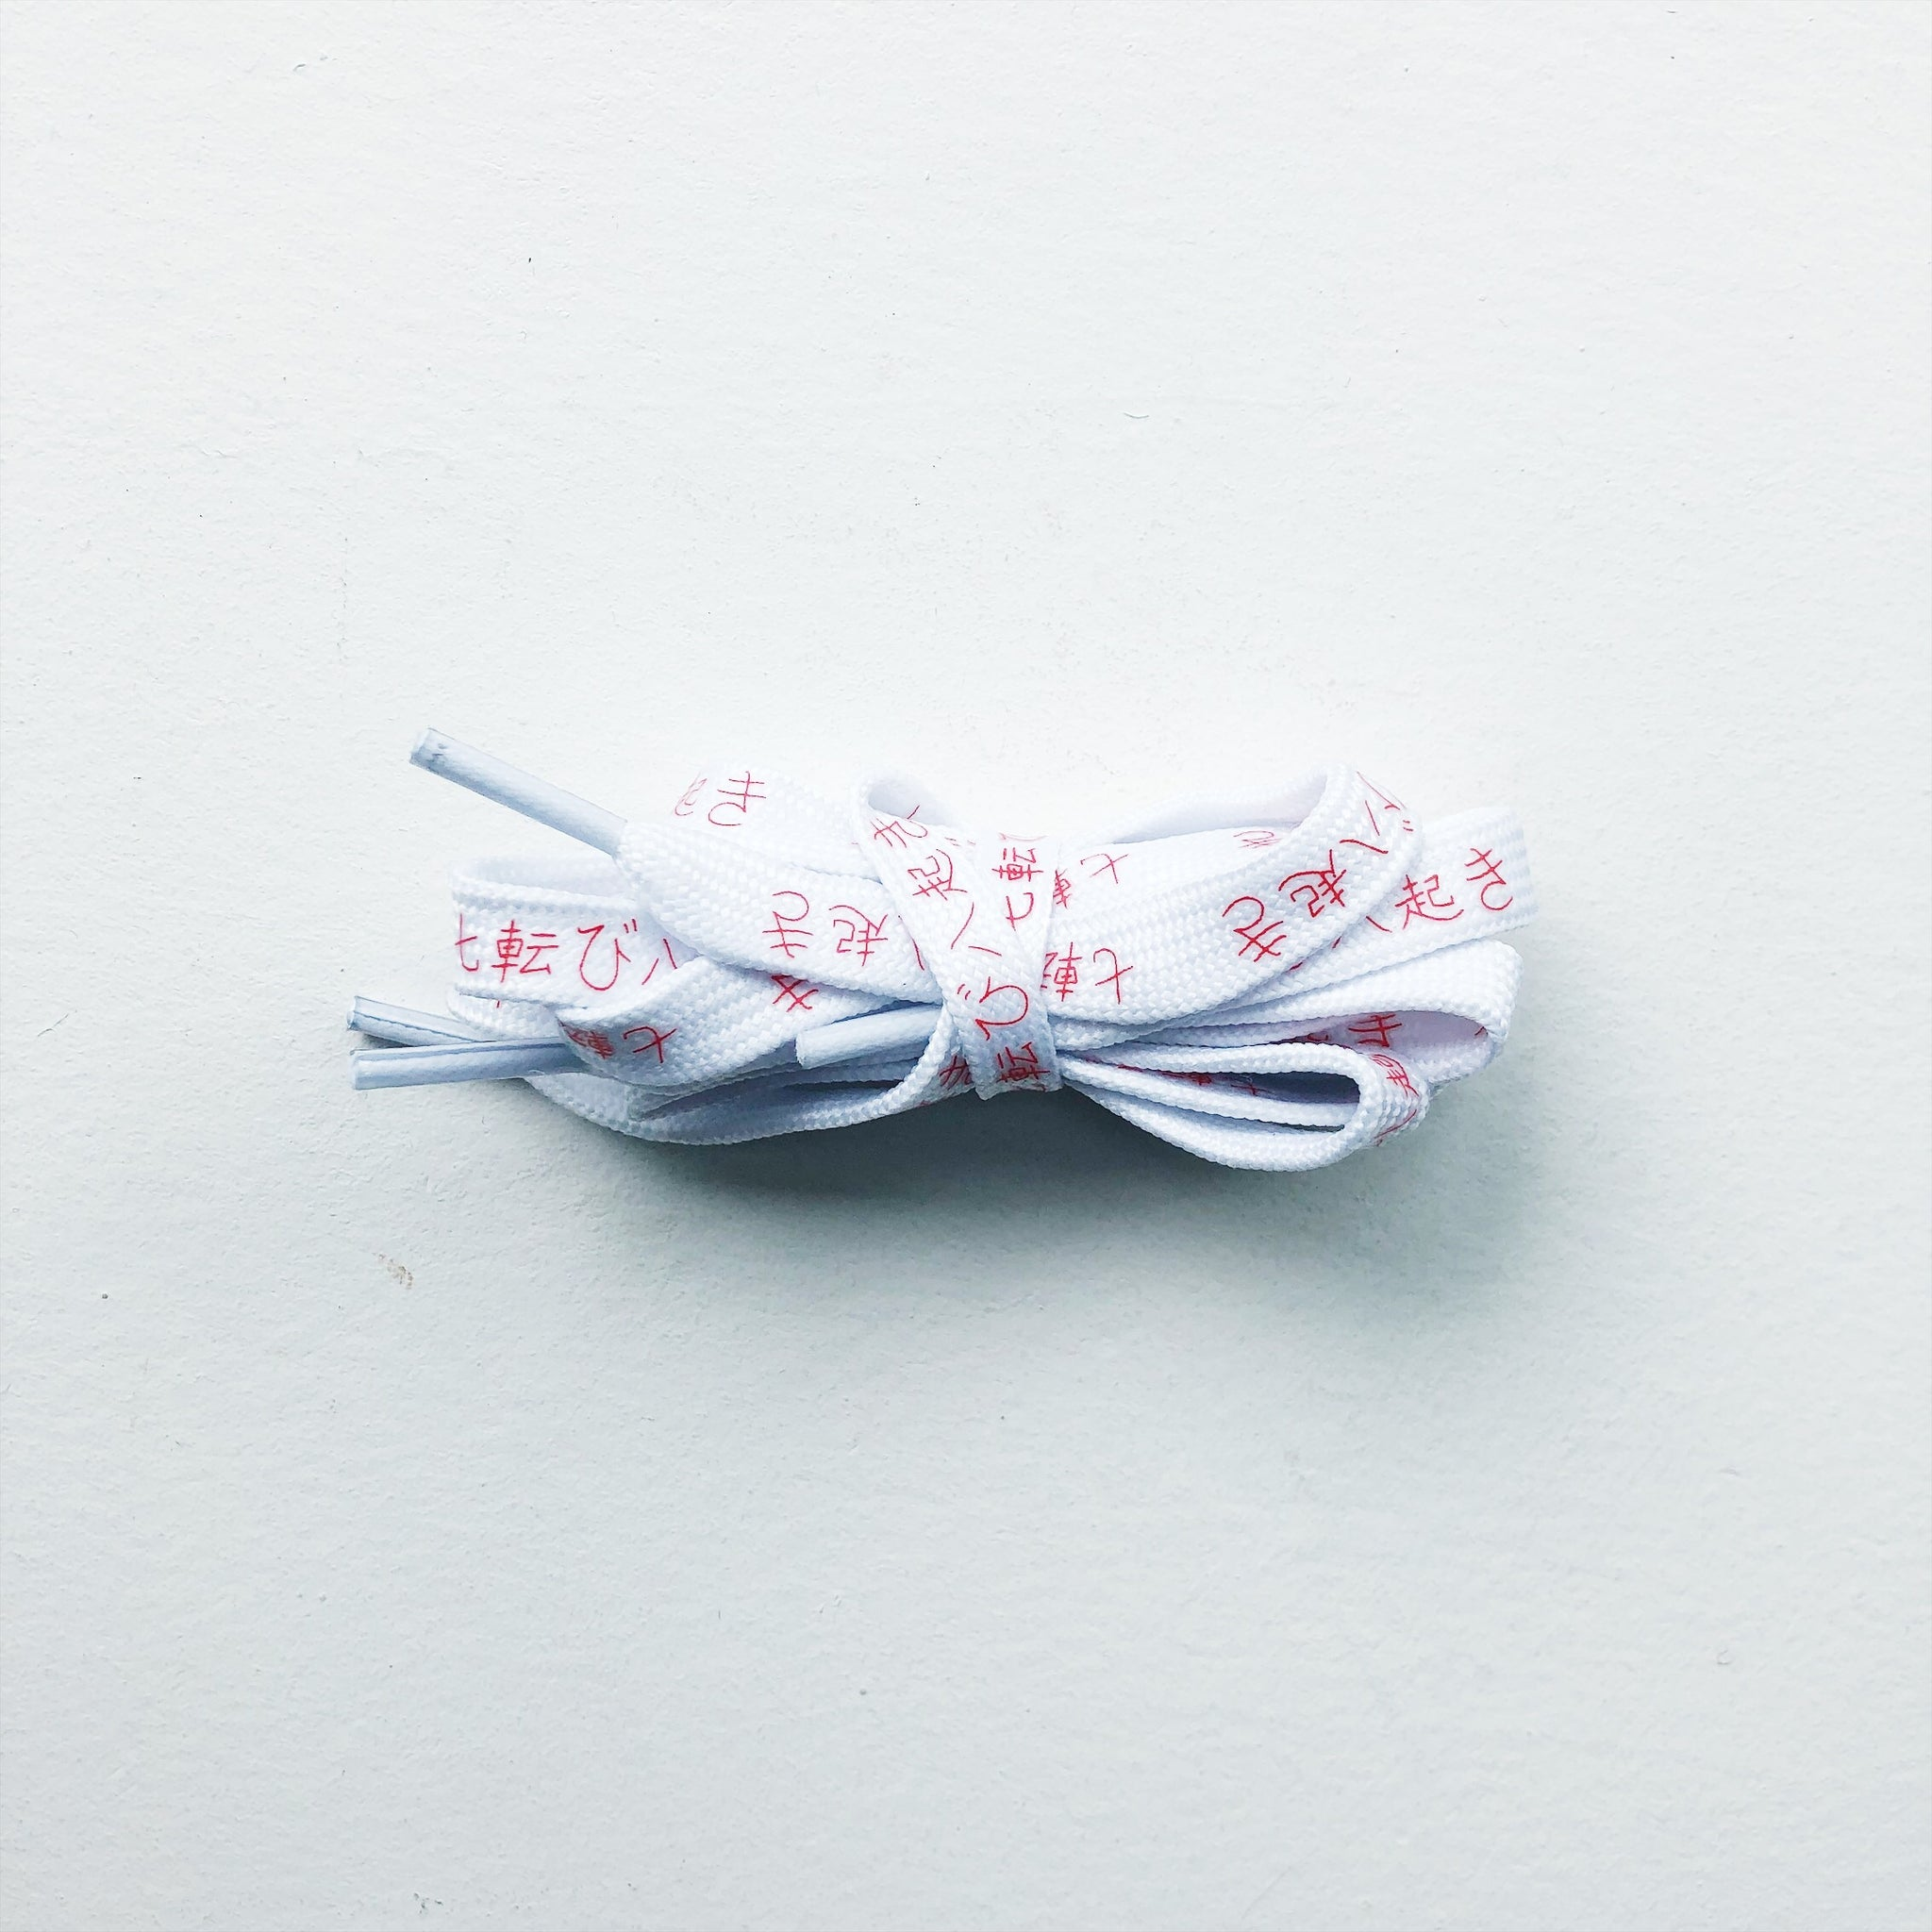 """Fall Down 7, Stand Up 8"" Katakana Shoelaces"